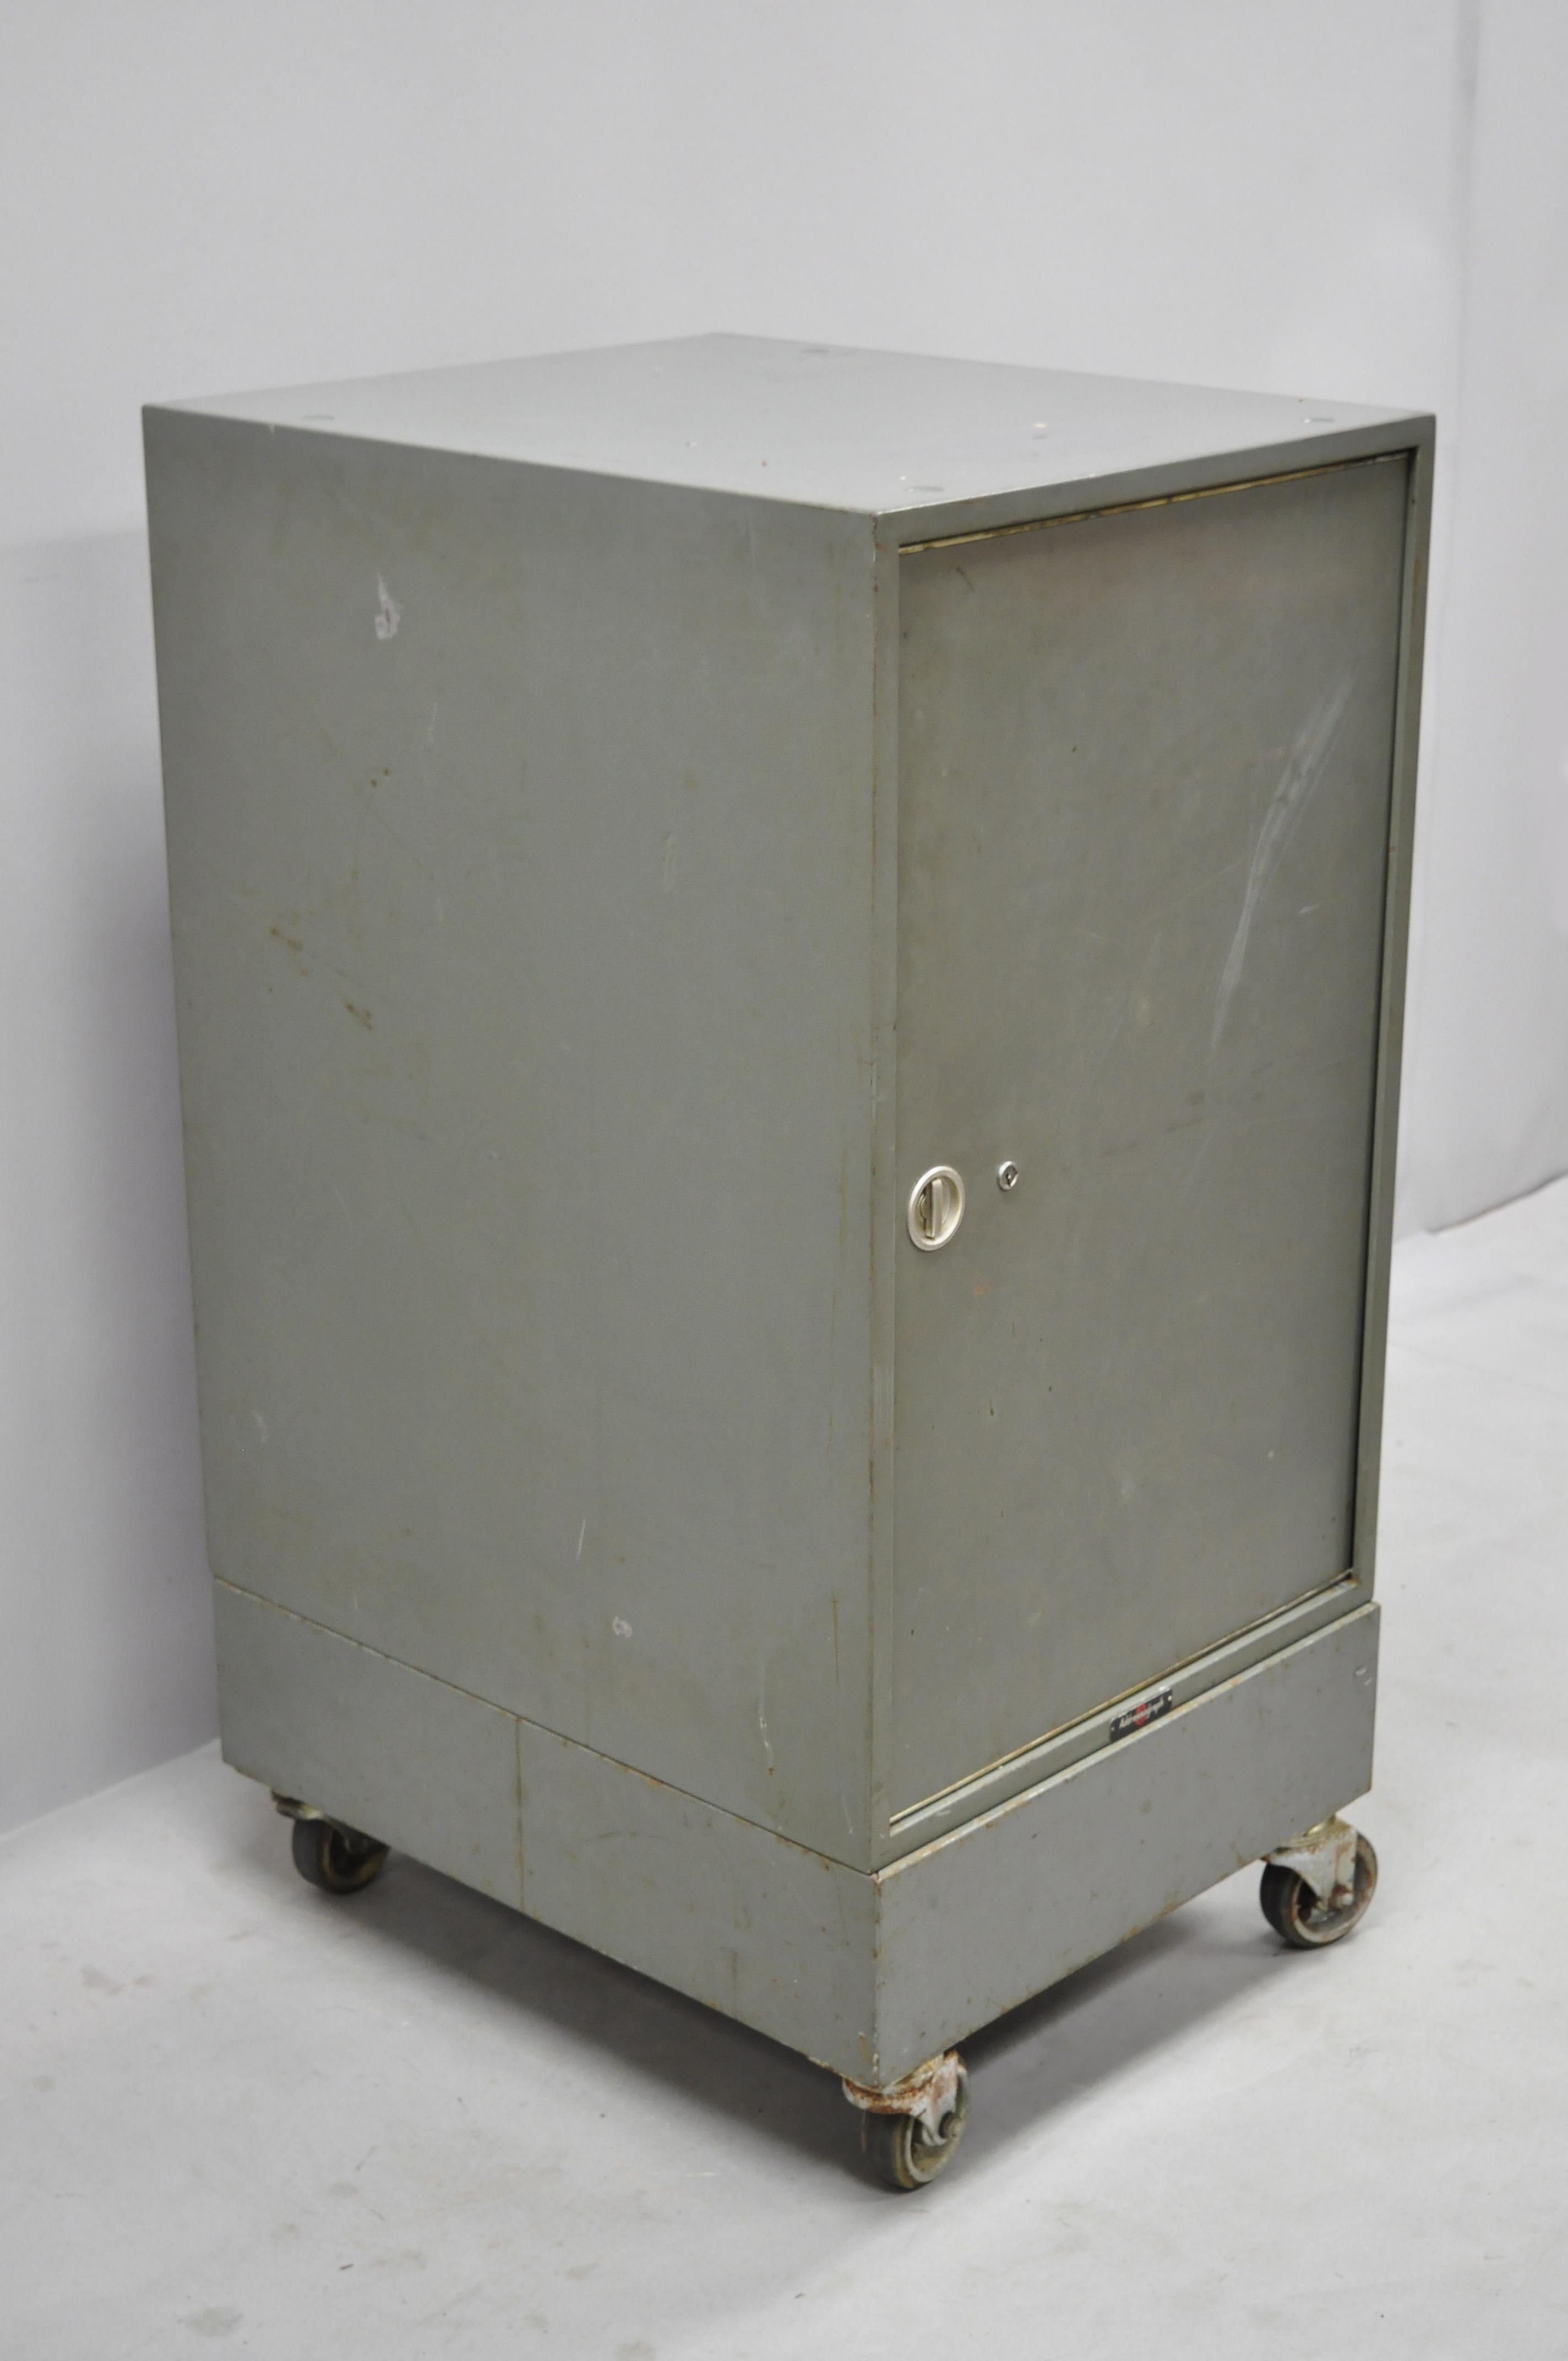 Vintage Industrial Steel Metal 30 Drawer Catalogue File Cabinet By Addressograph